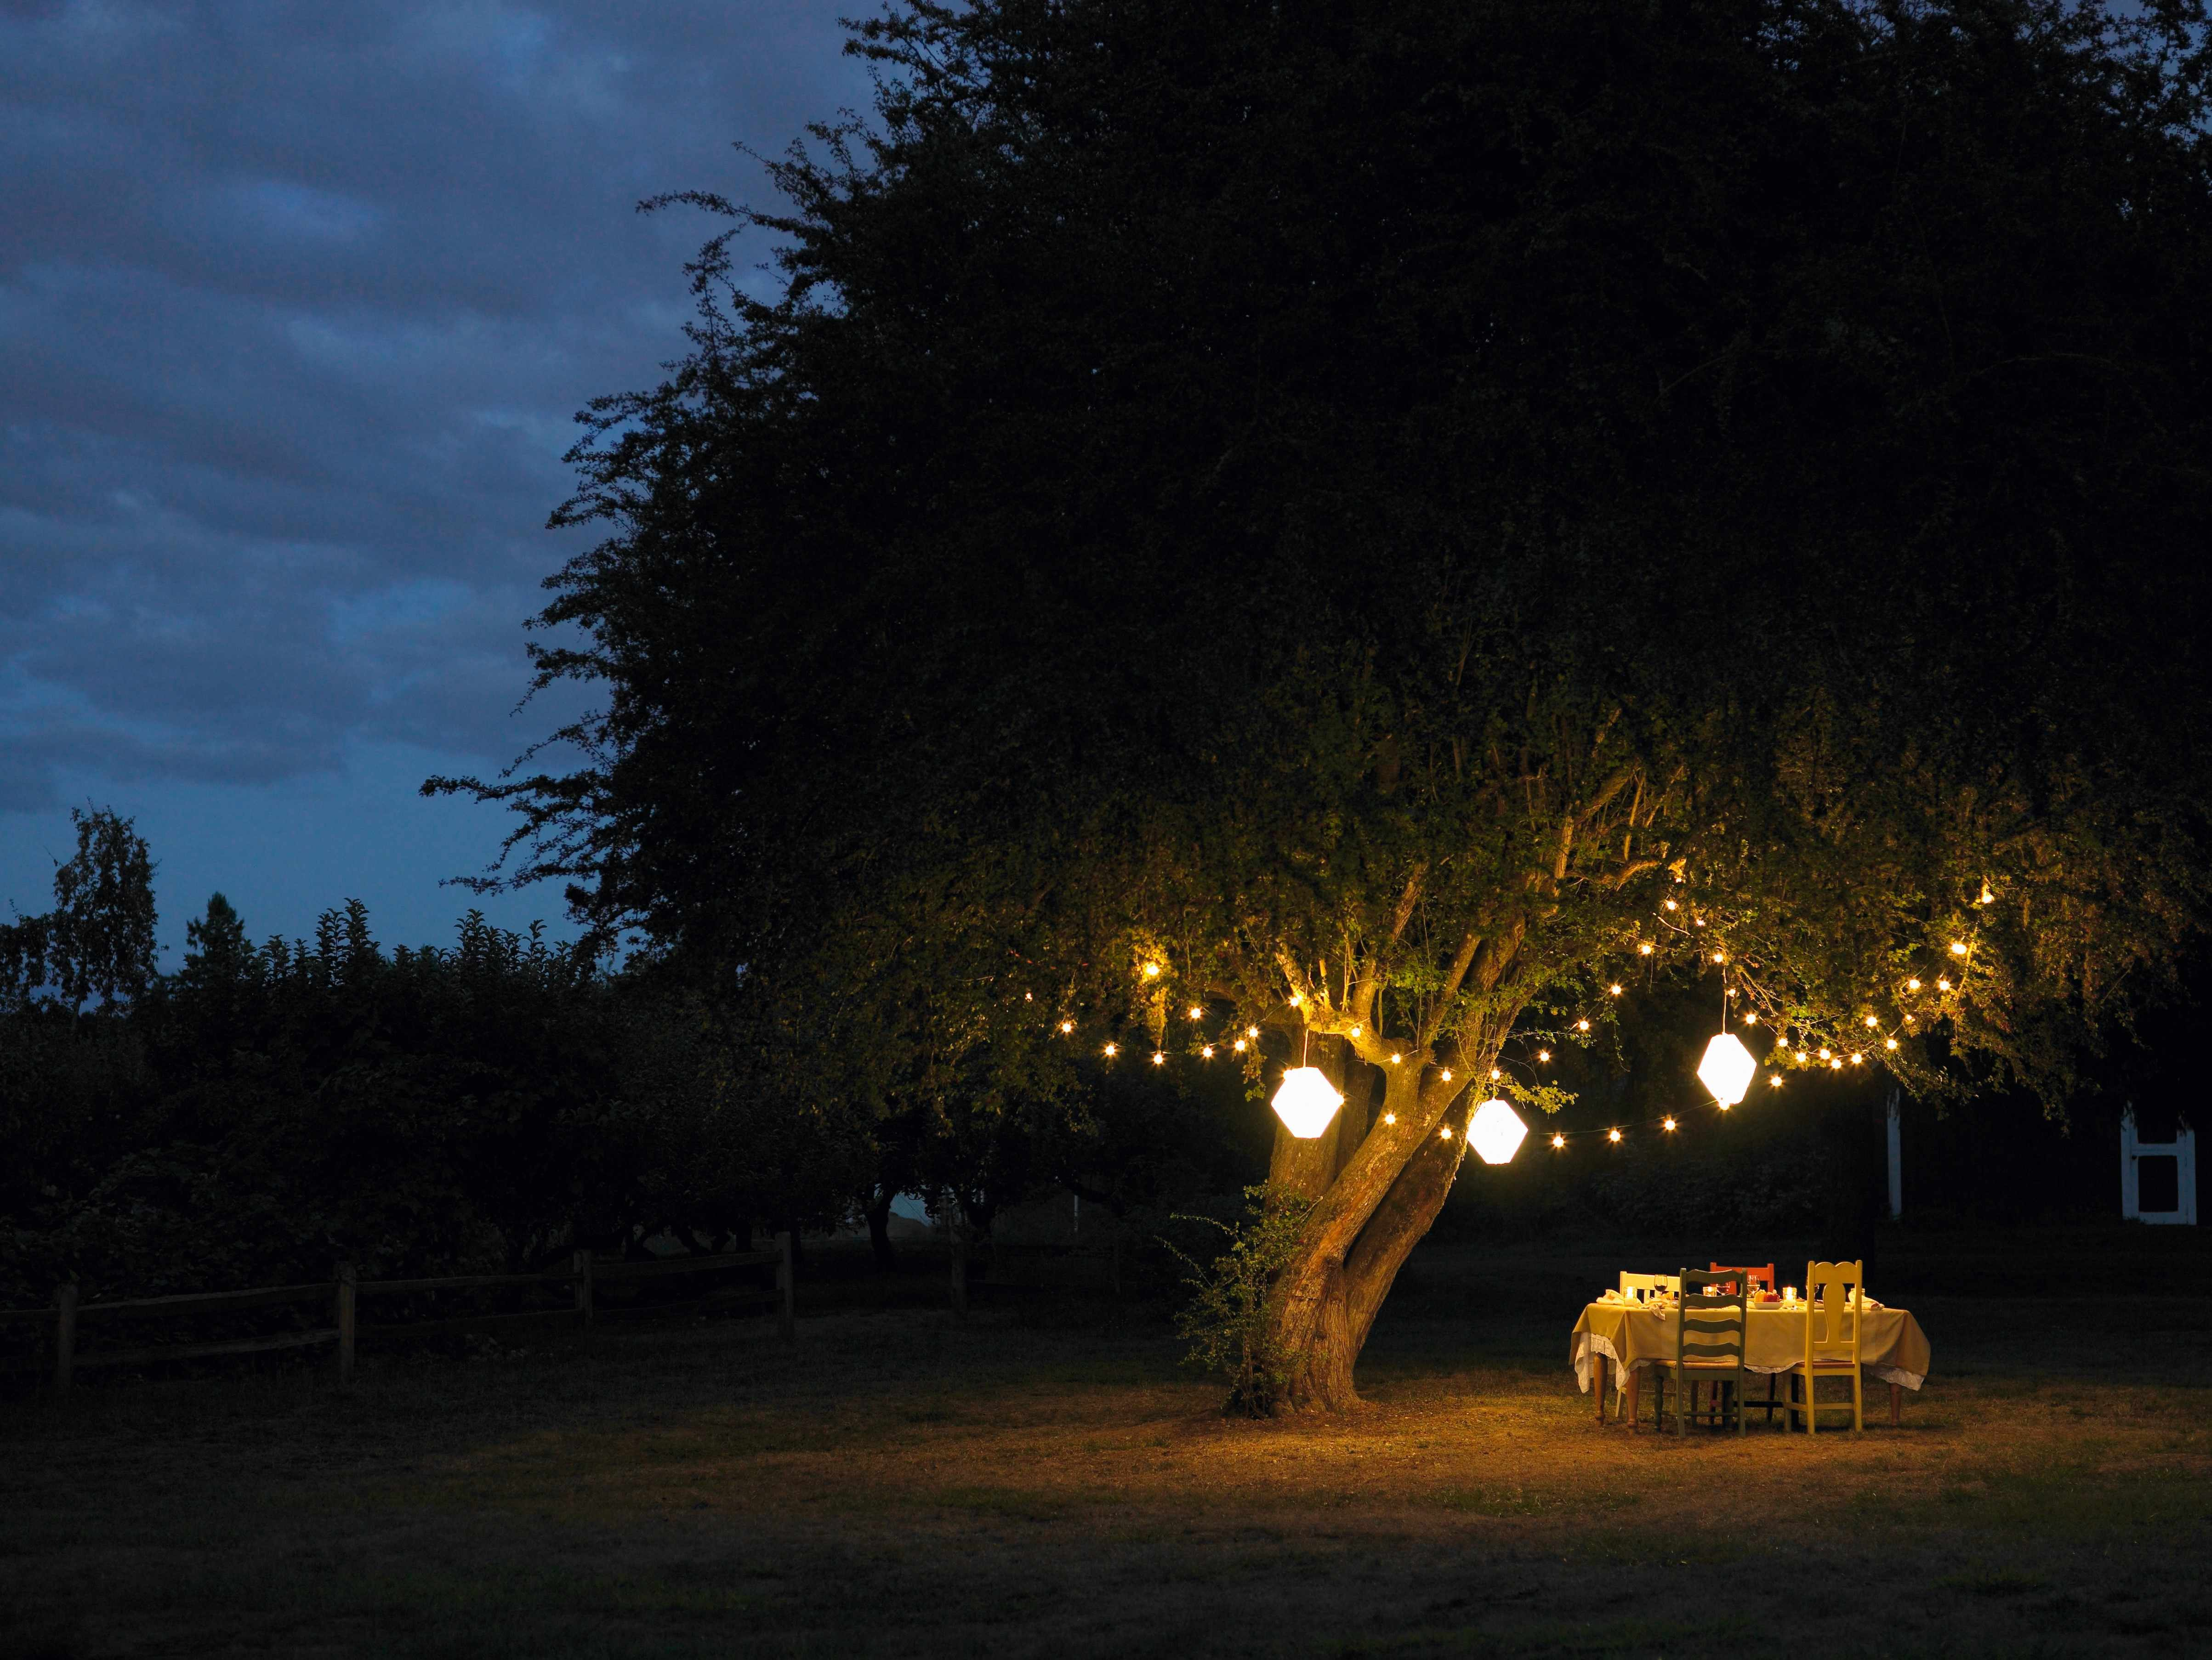 Dining table set up for an evening dinner party in the garden under a tree decorated with string lights and large lanterns